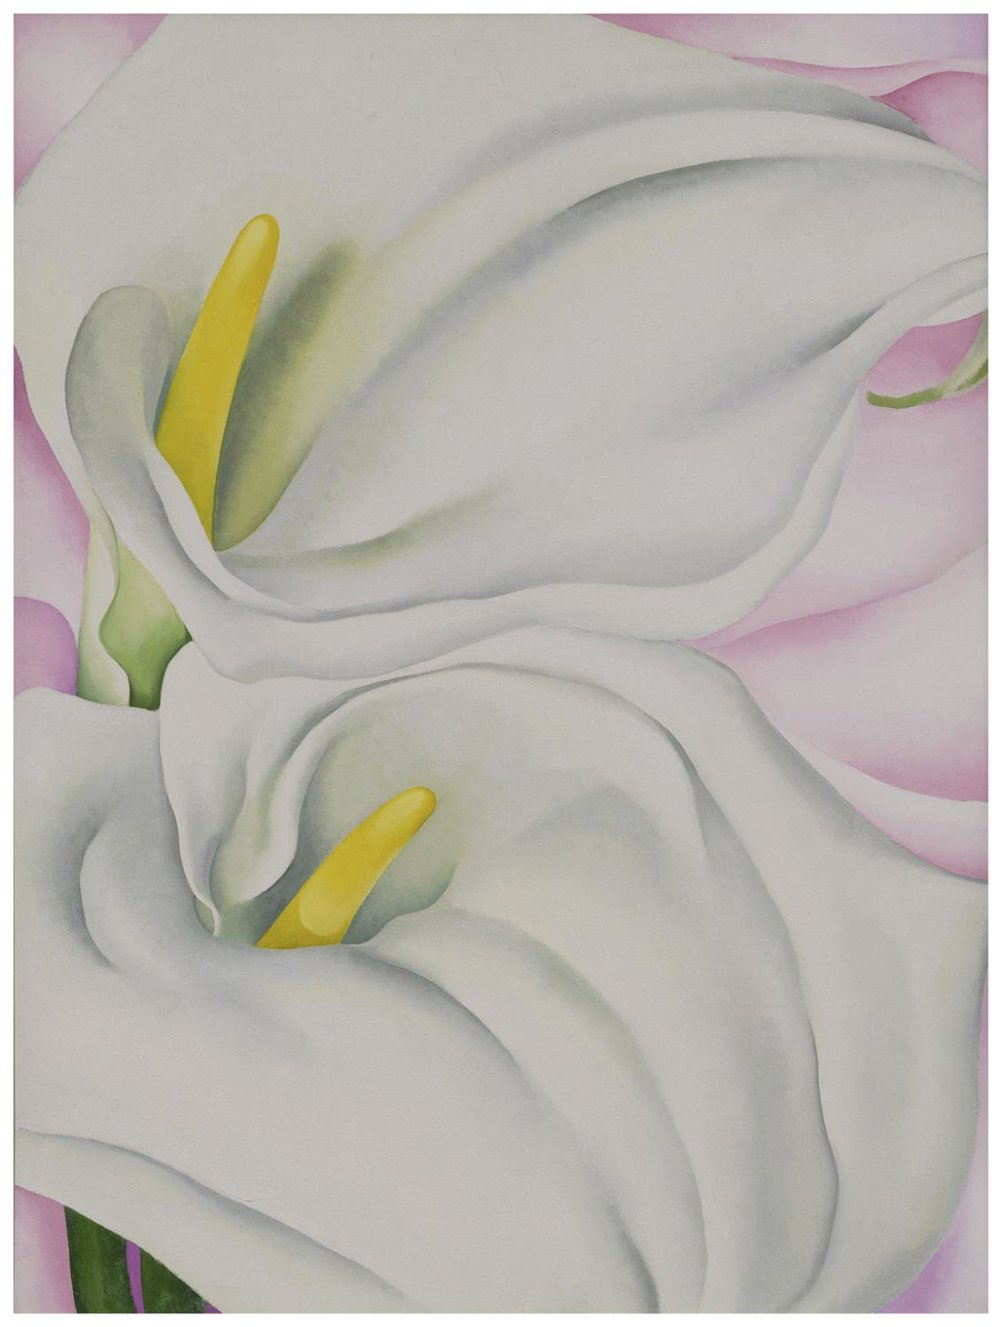 Georgia O'Keeffe,  Two Calla Lilies on Pink , 1928 Oil on canvas | Image courtesy of Philadelphia Museum of Art